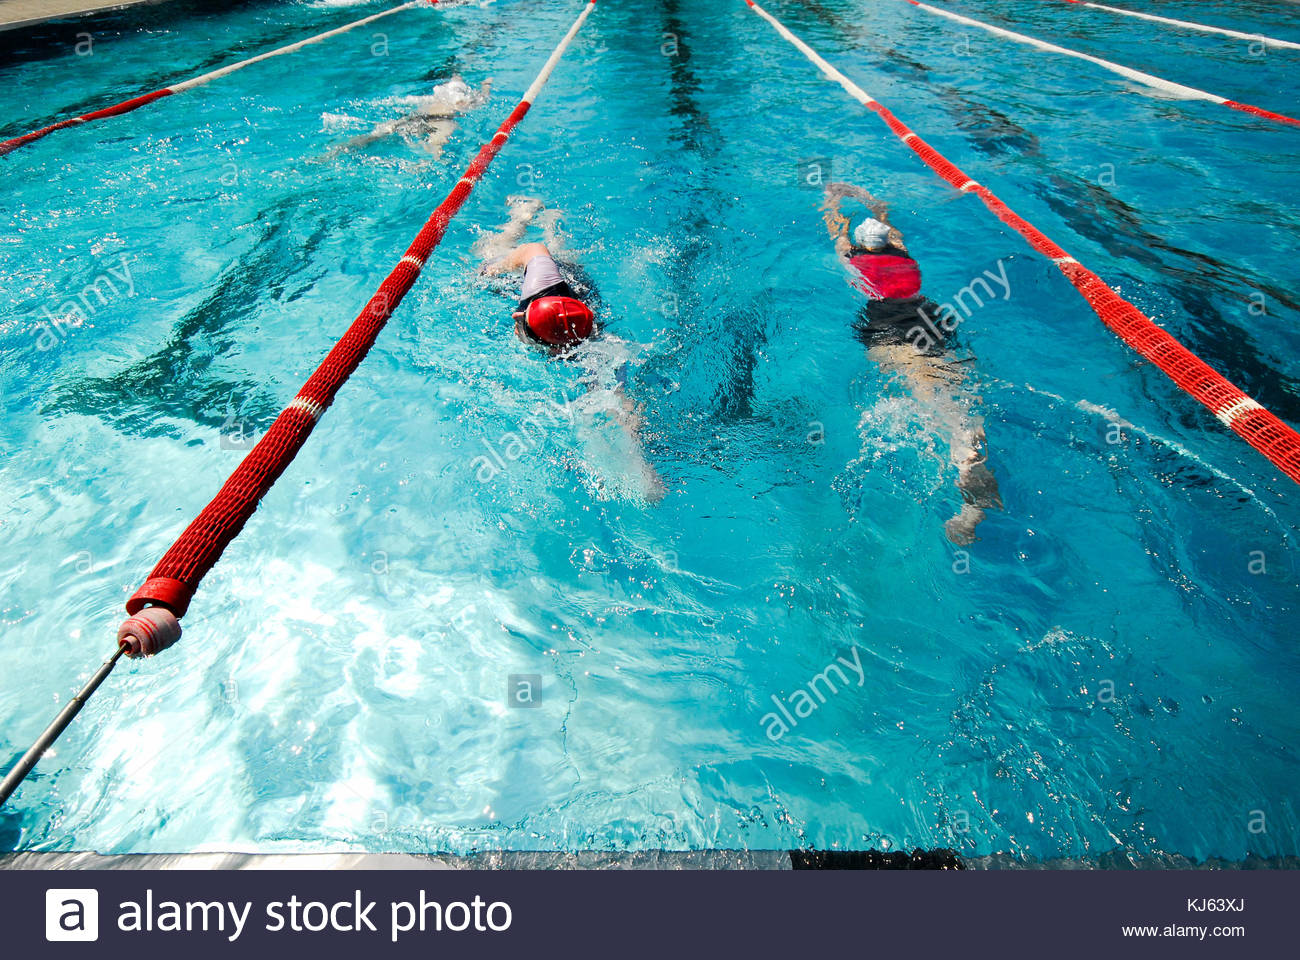 Swimmer move along in the lane - Stock Image